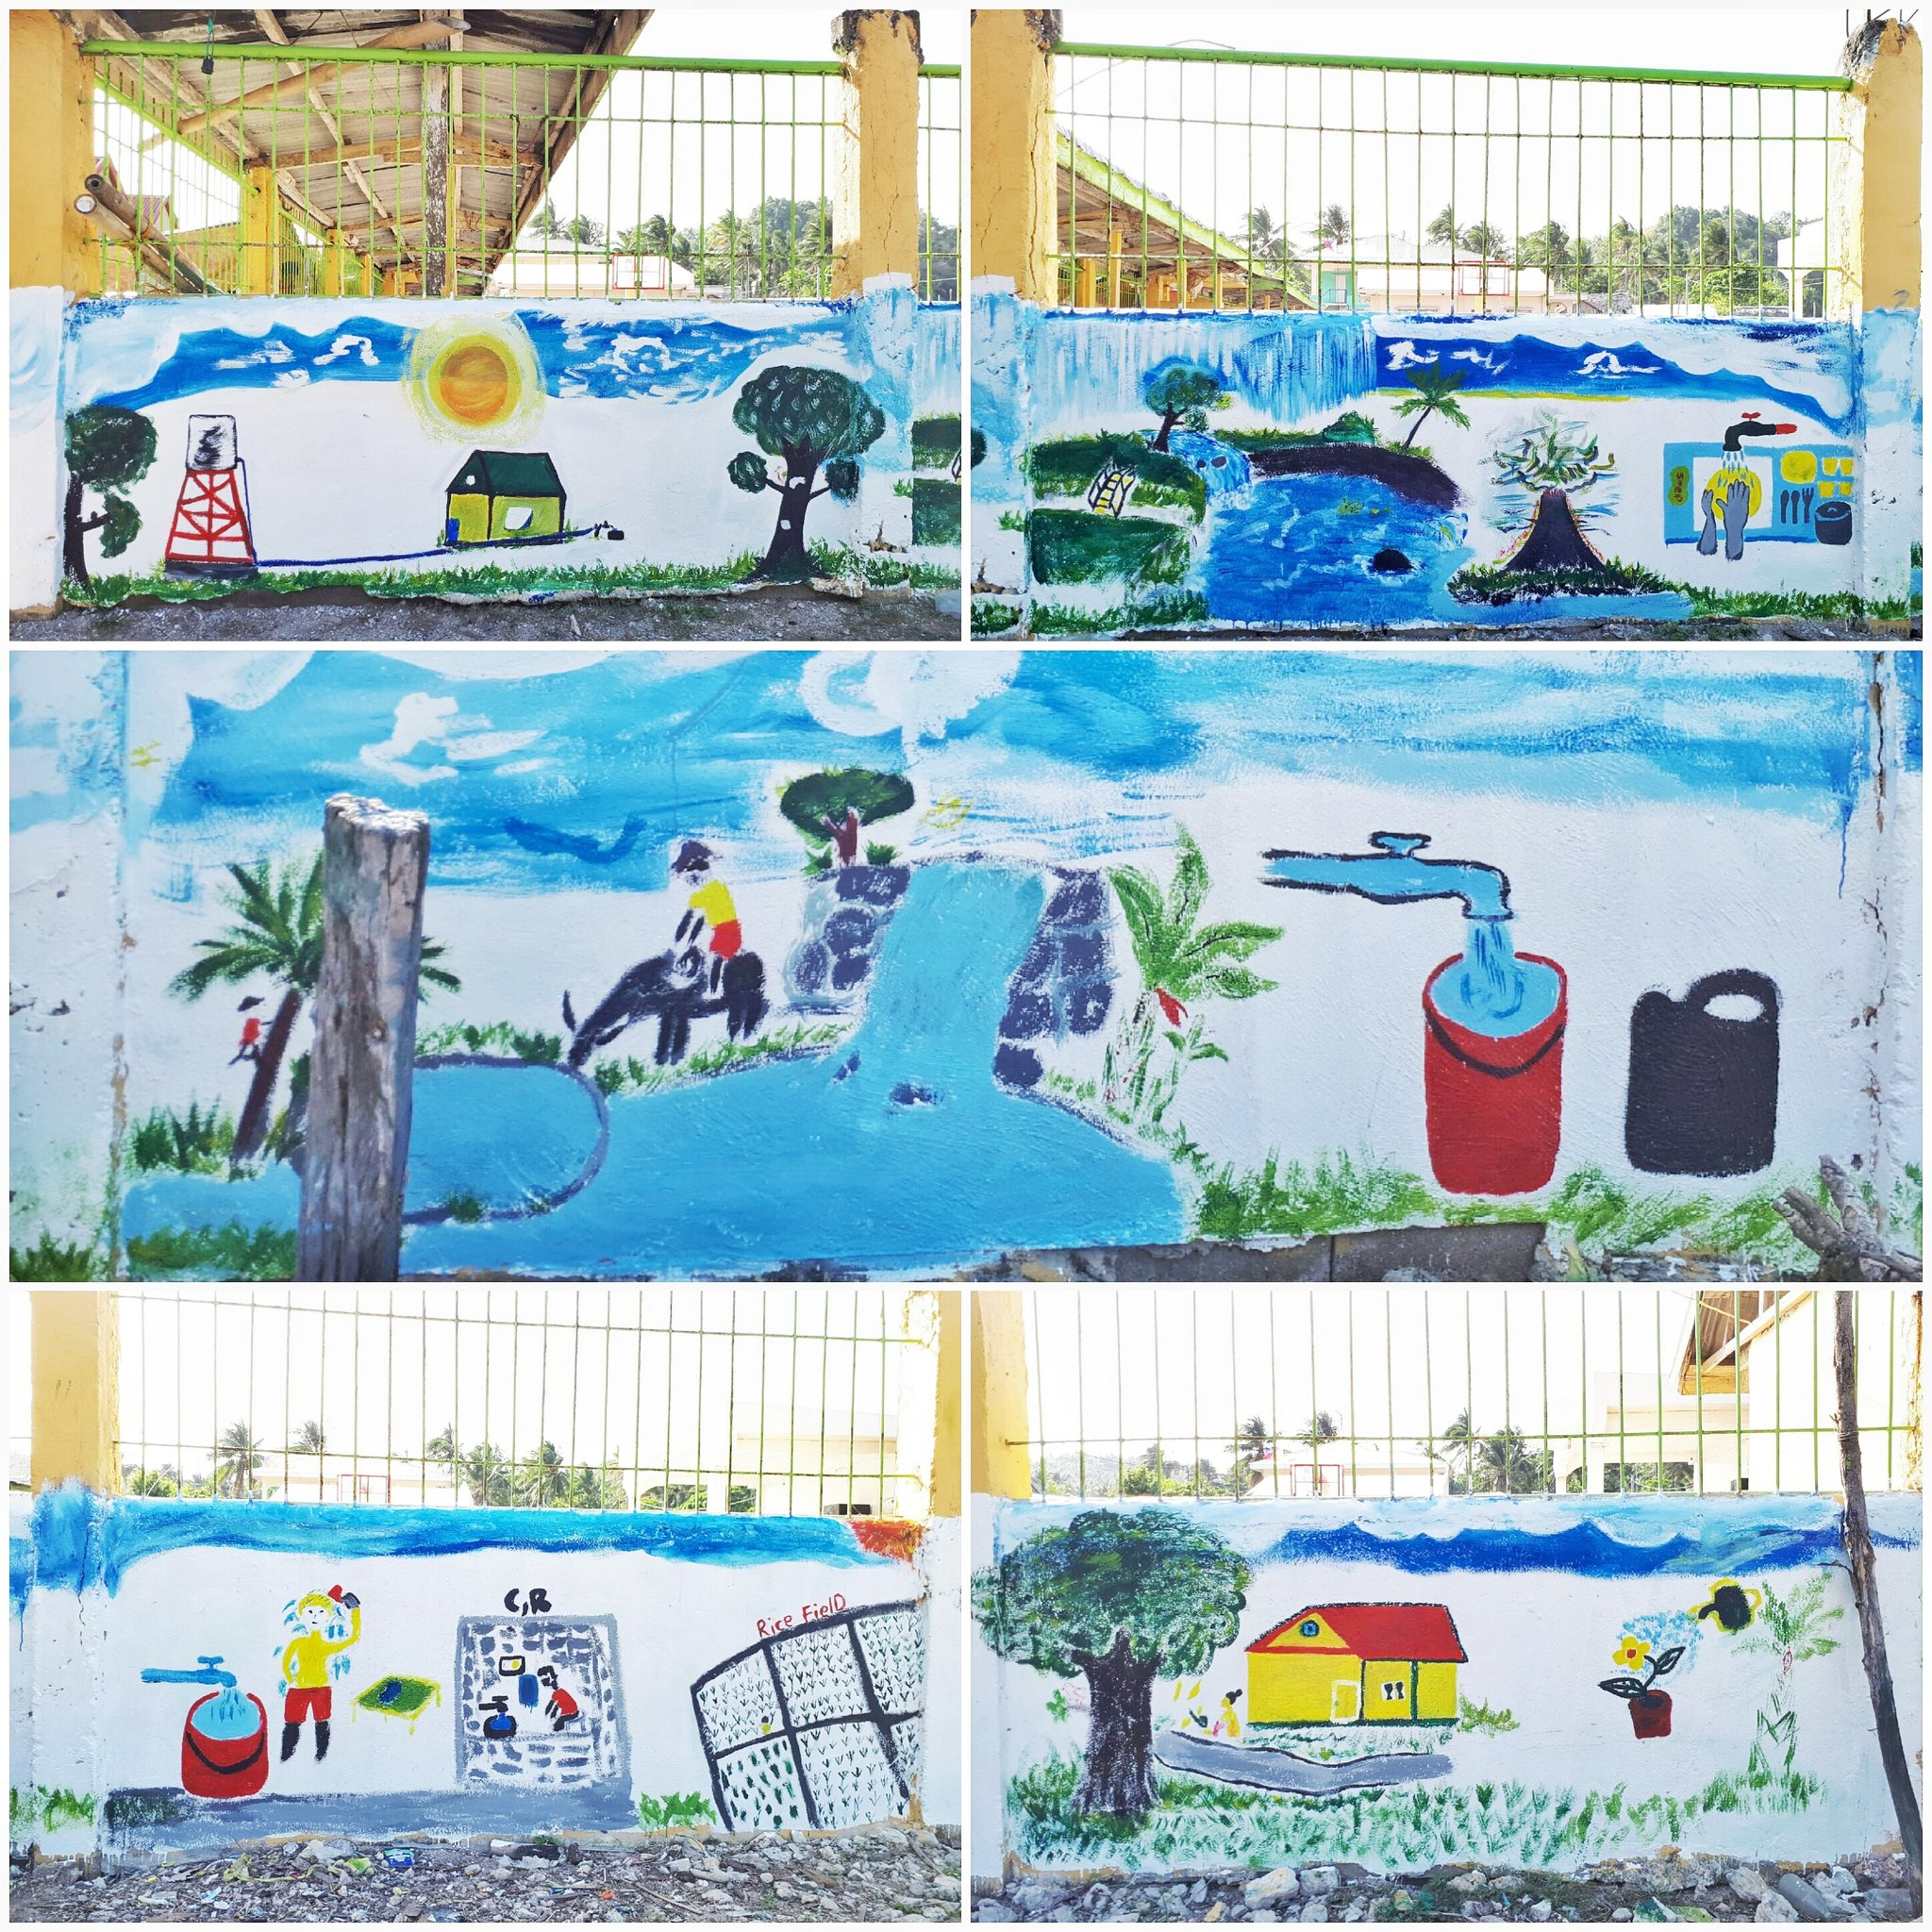 The #iWaSH community mural in Aroroy Masbate has been conceptualized by school boys and girls and their mothers. #WWDPH #GlobalGoals https://t.co/KAou8Ayi31